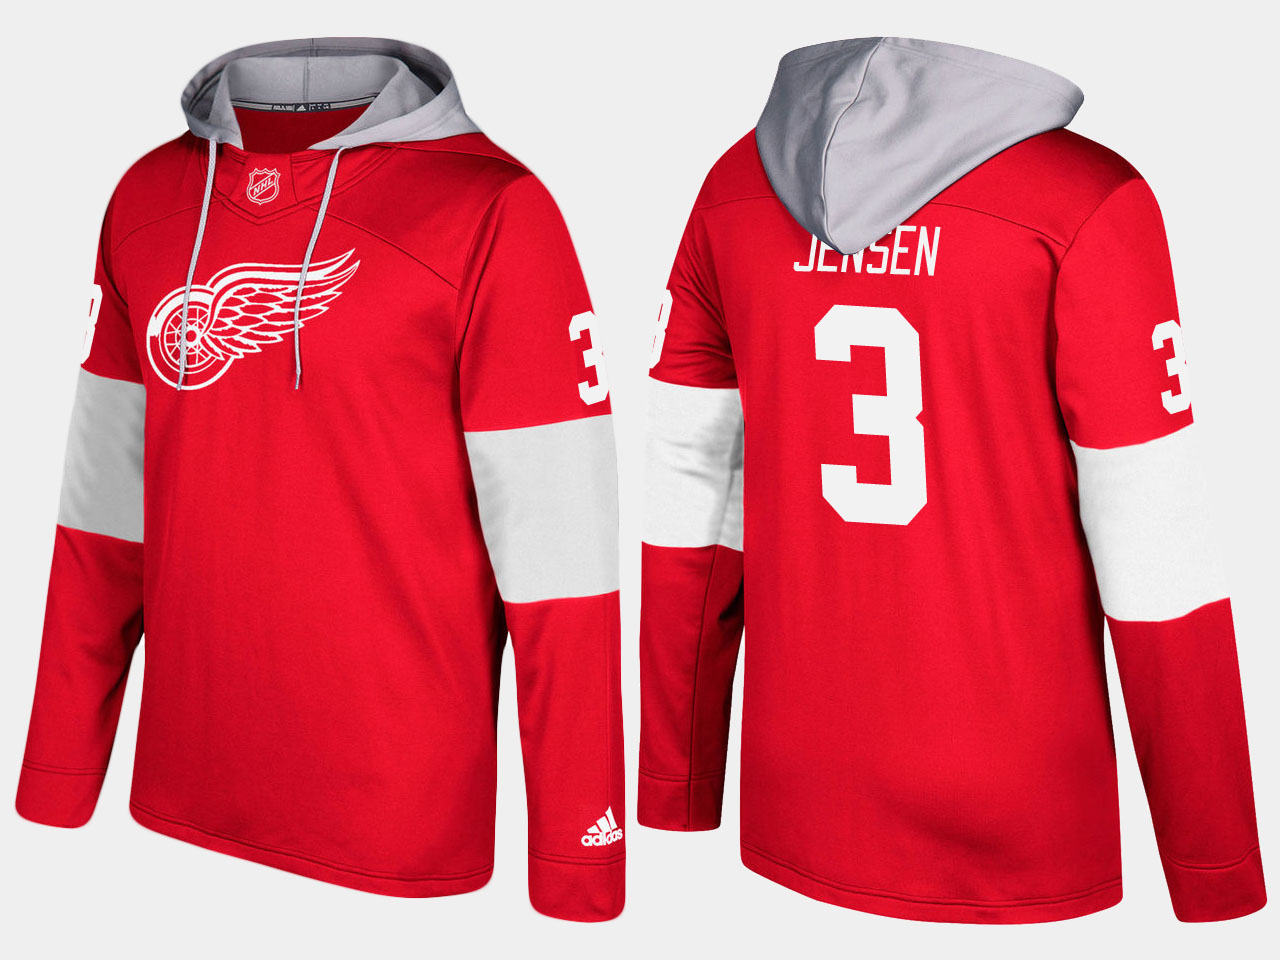 NHL Men Detroit red wings 3 nick jensen red hoodie